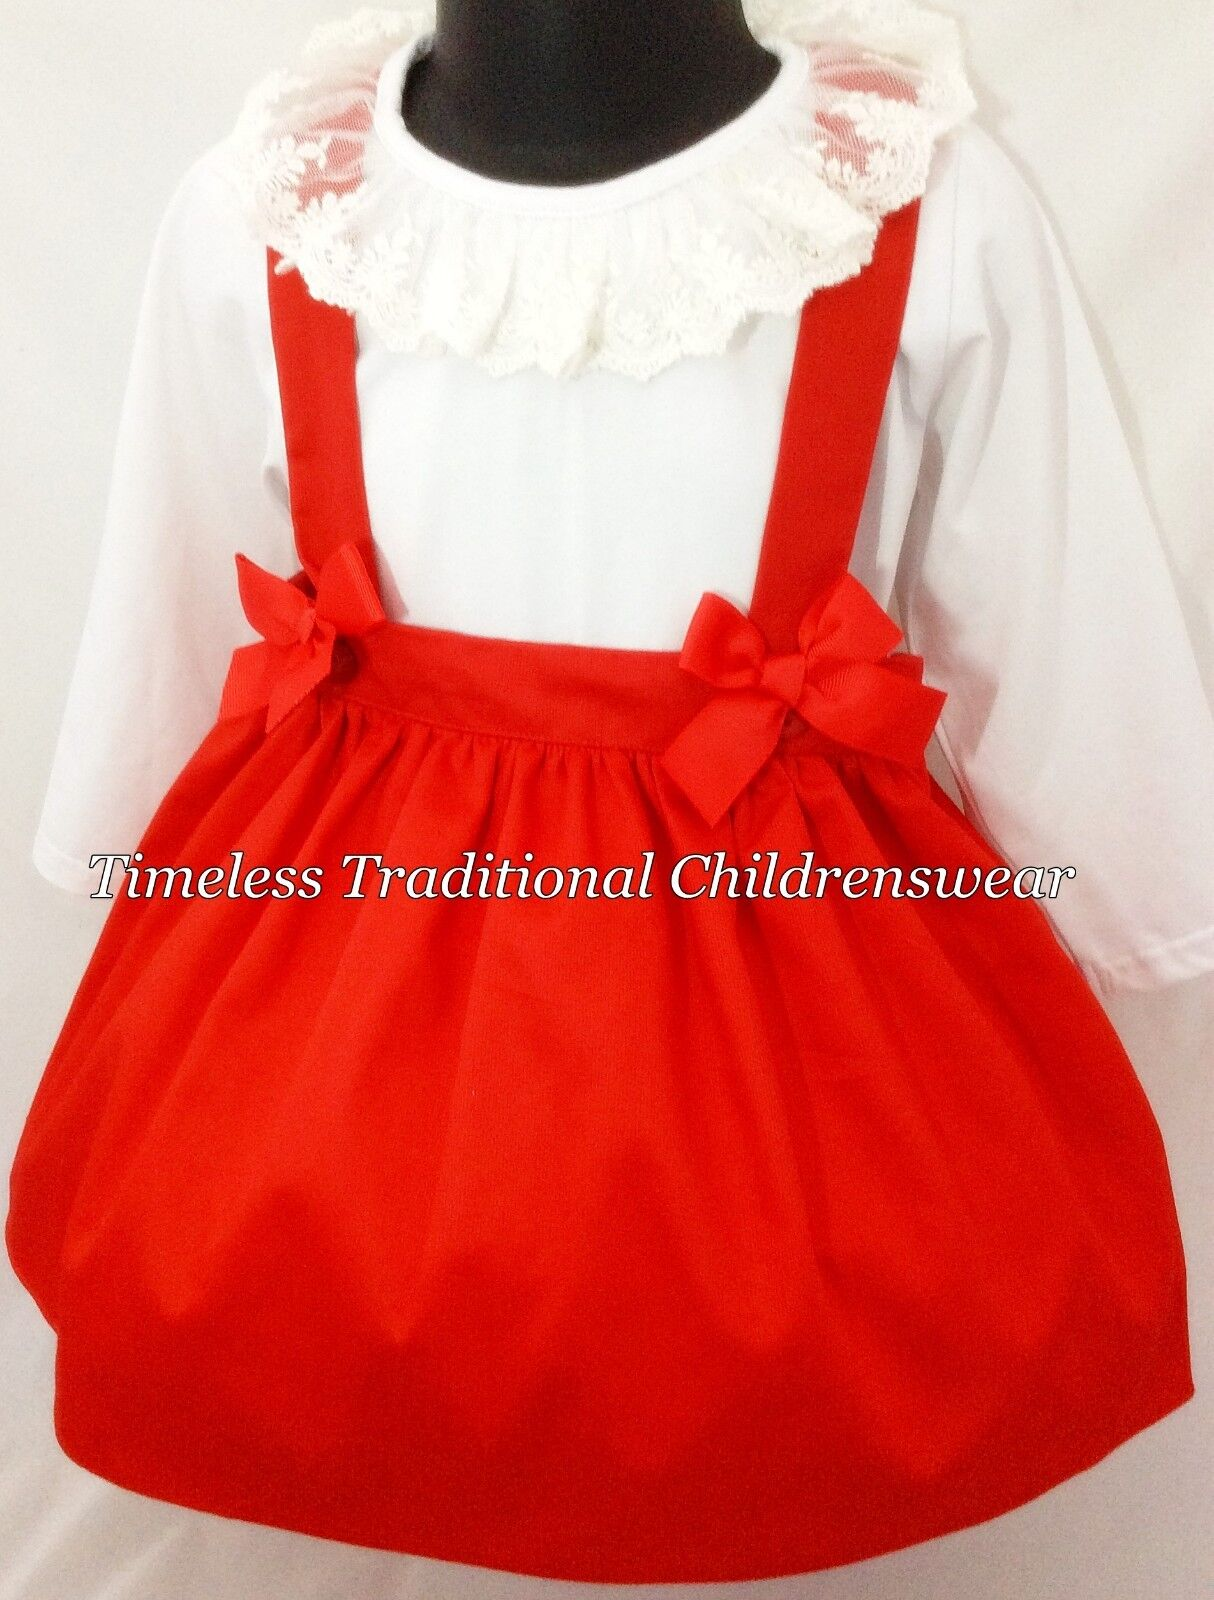 Christmas Red Spanish Lace Collar Top & Skirt With Braces Outfit Set 2,3,4,5,6,7